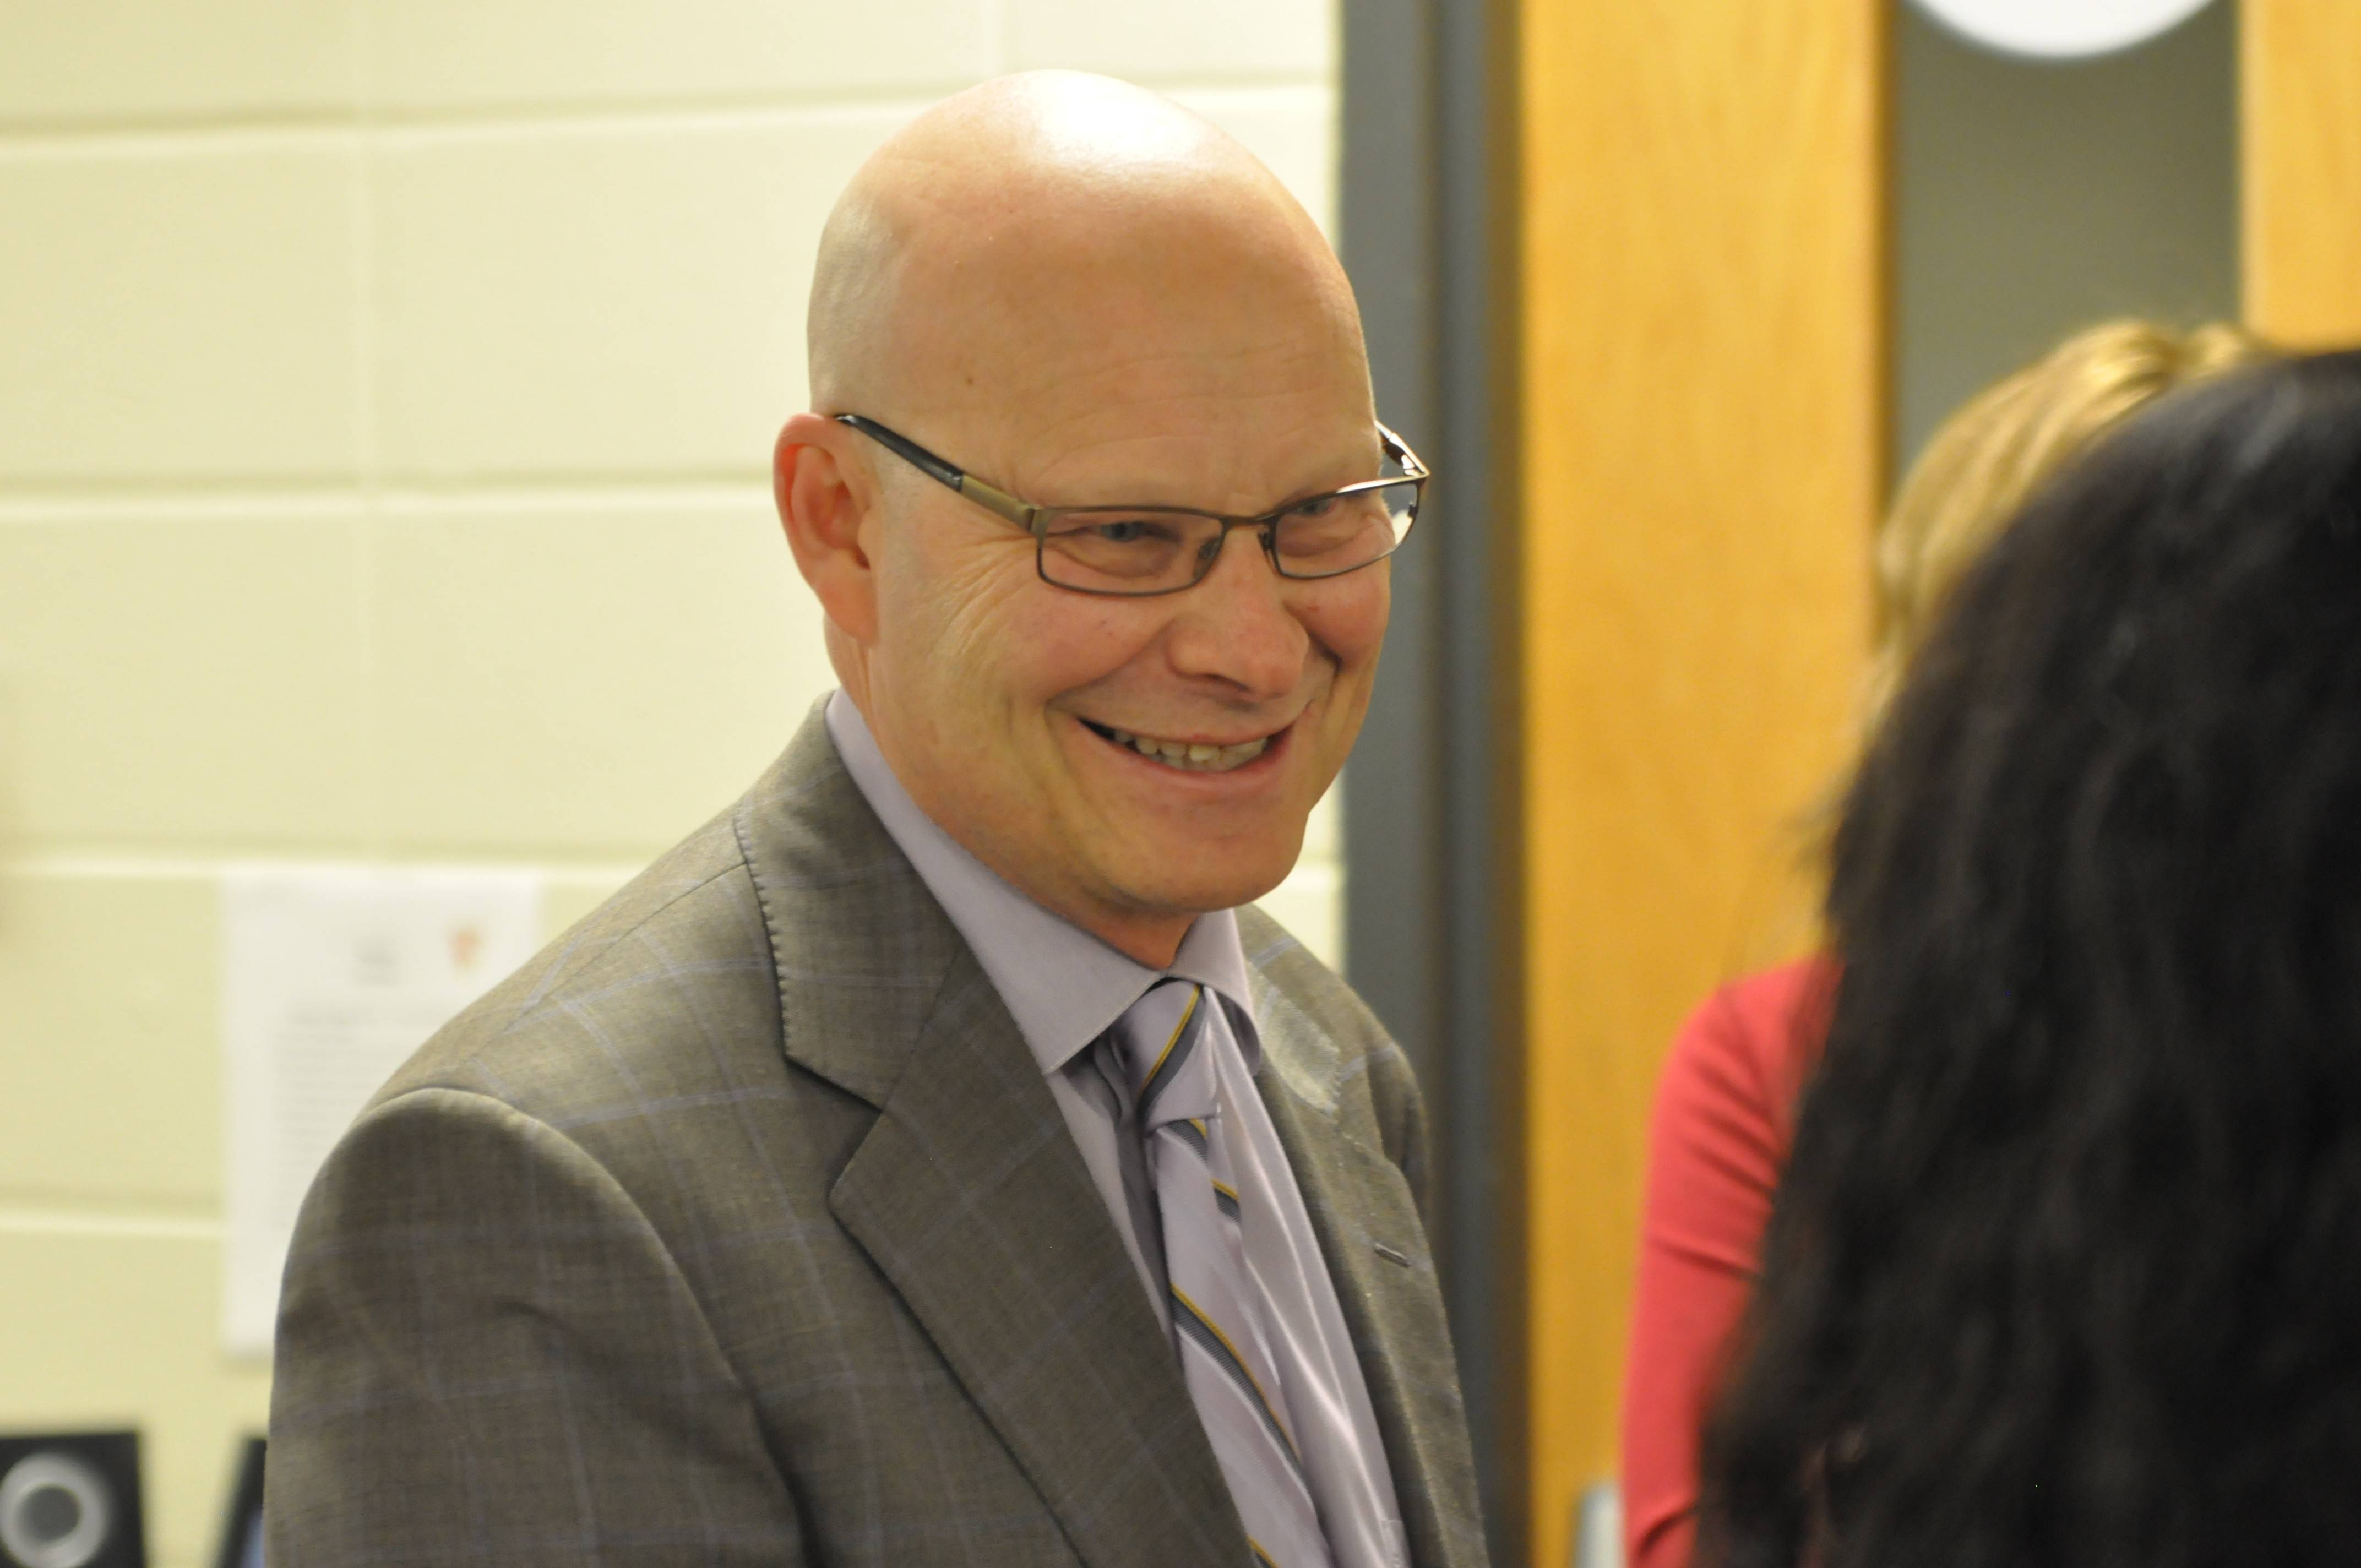 Superintendent Tom Leonard is leaving Barrington Area Unit District 220 to take a job in a suburb of Austin, Texas.